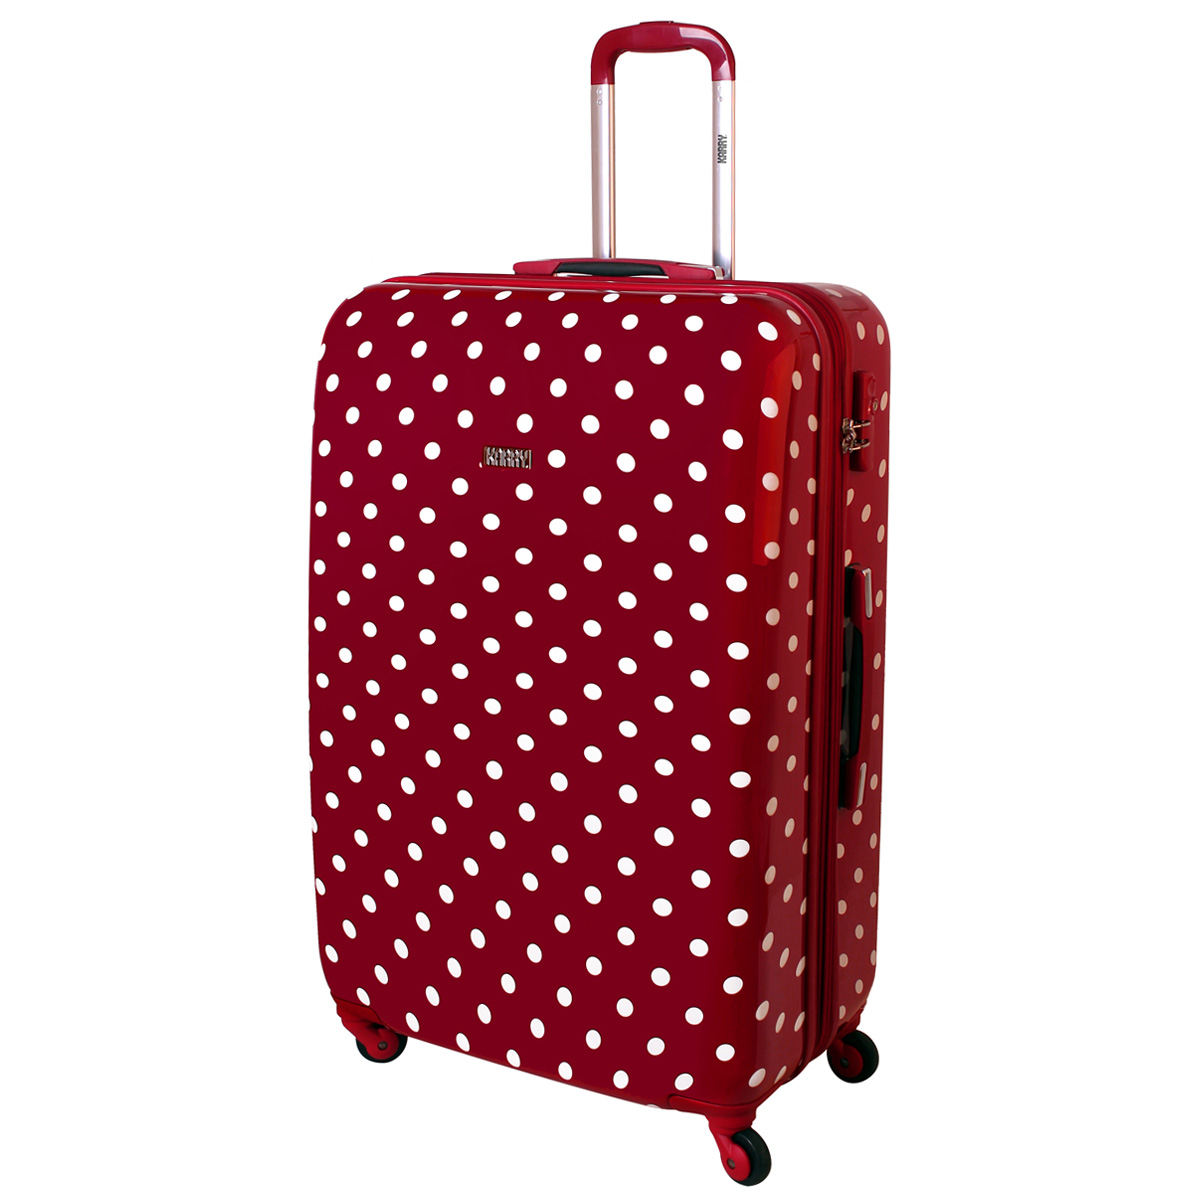 xxl hard wheeled case suitcase 4 wheels 120l travel red dots ebay. Black Bedroom Furniture Sets. Home Design Ideas